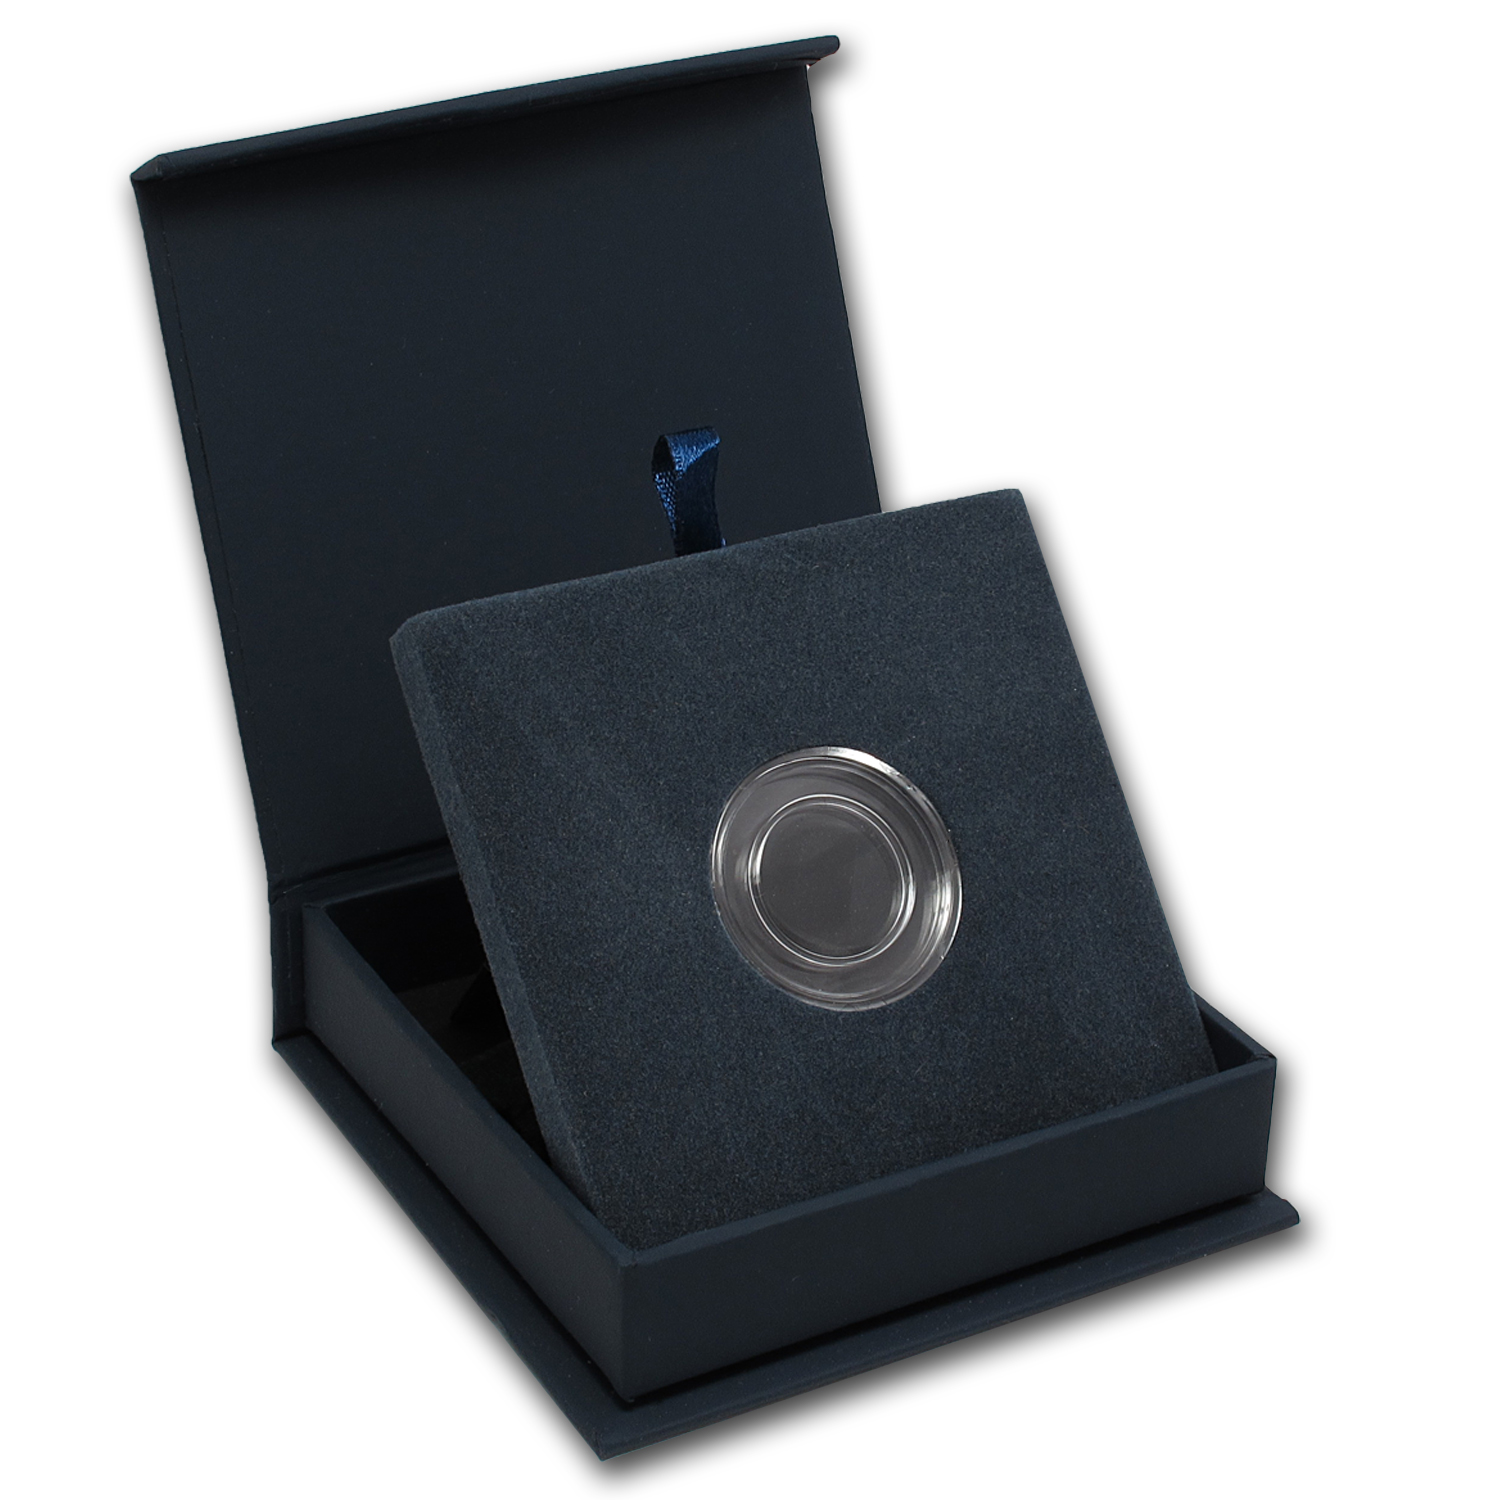 APMEX Gift Box - Includes 18 mm Direct Fit Air-Tite Holder